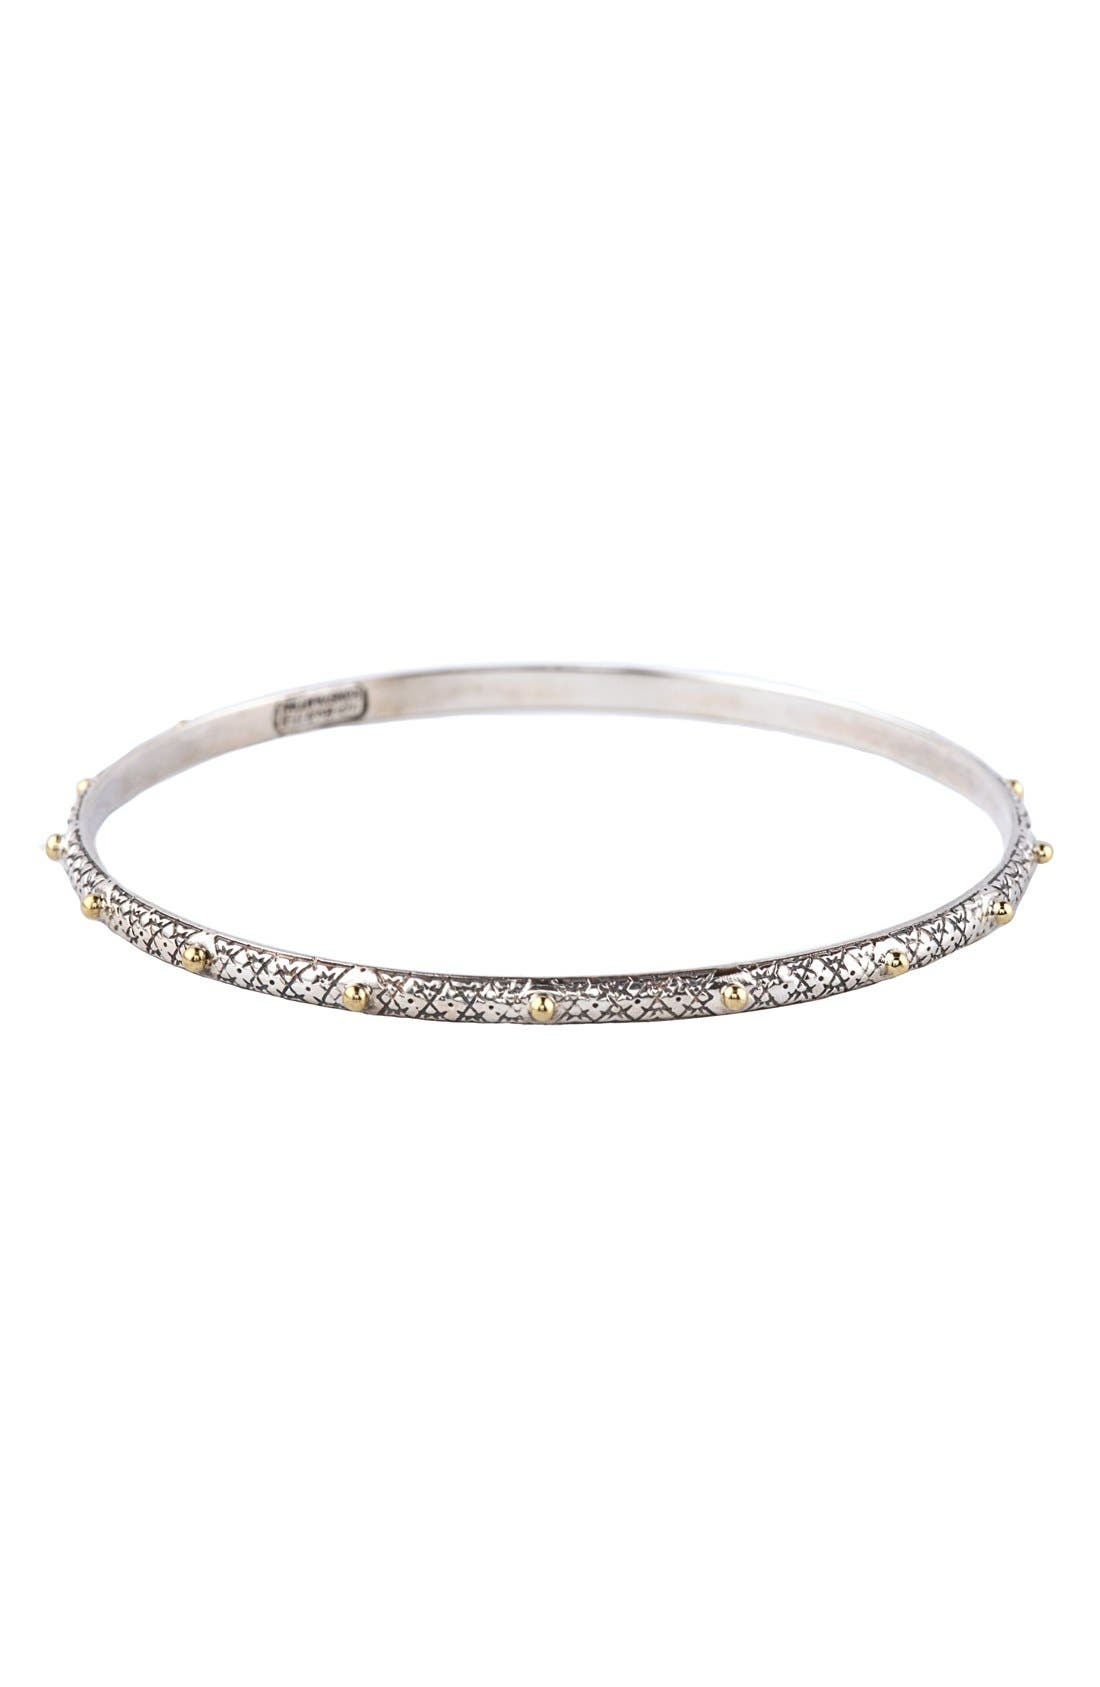 Main Image - Konstantino 'Classics' Two-Tone Bangle